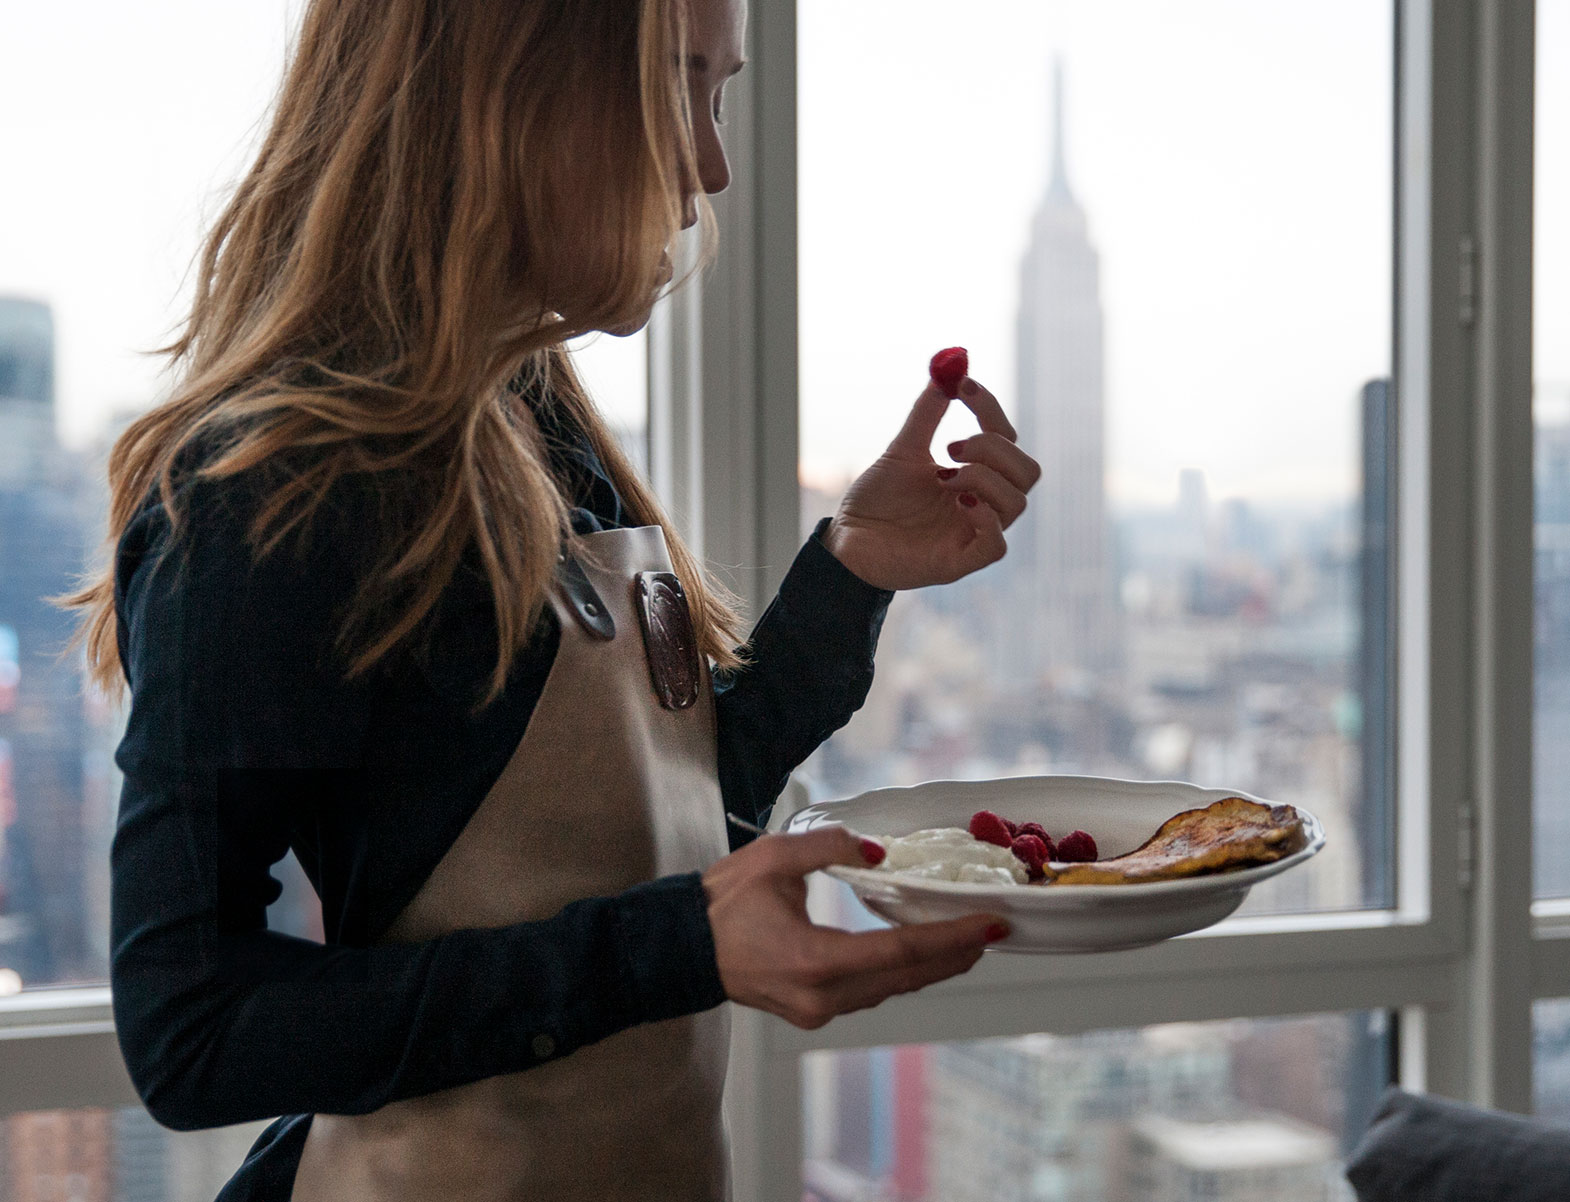 WITLOFT Penthouse in NYC Story woman in an apron